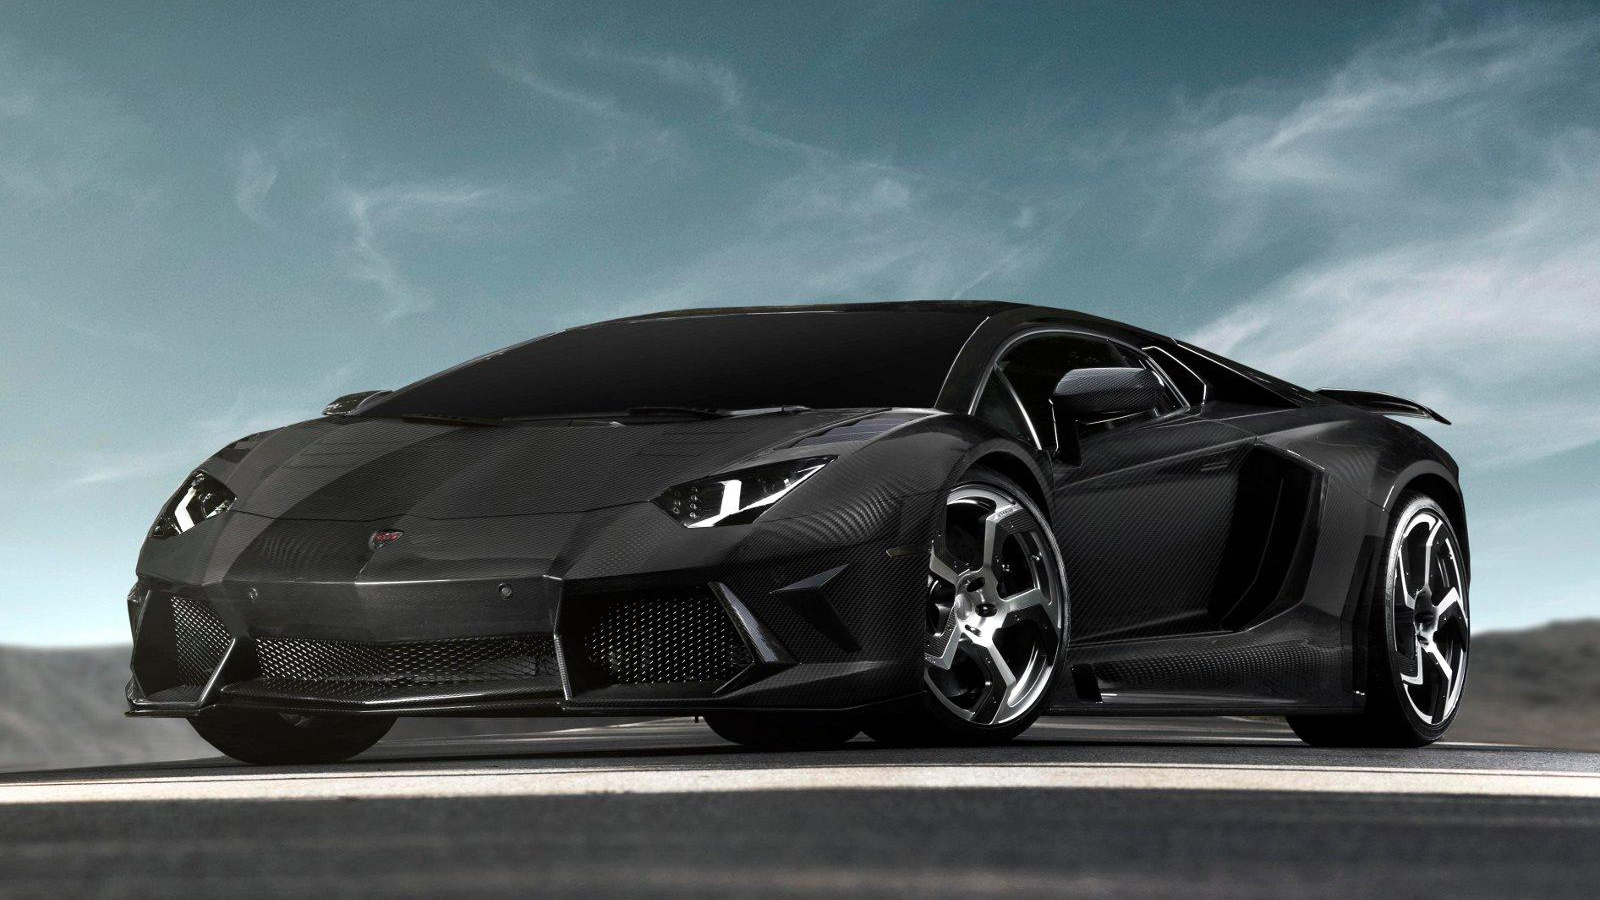 car wallpapers free download  2012 mansory lamborghini aventador carbonado v12 754 cv 76 5 mkgf